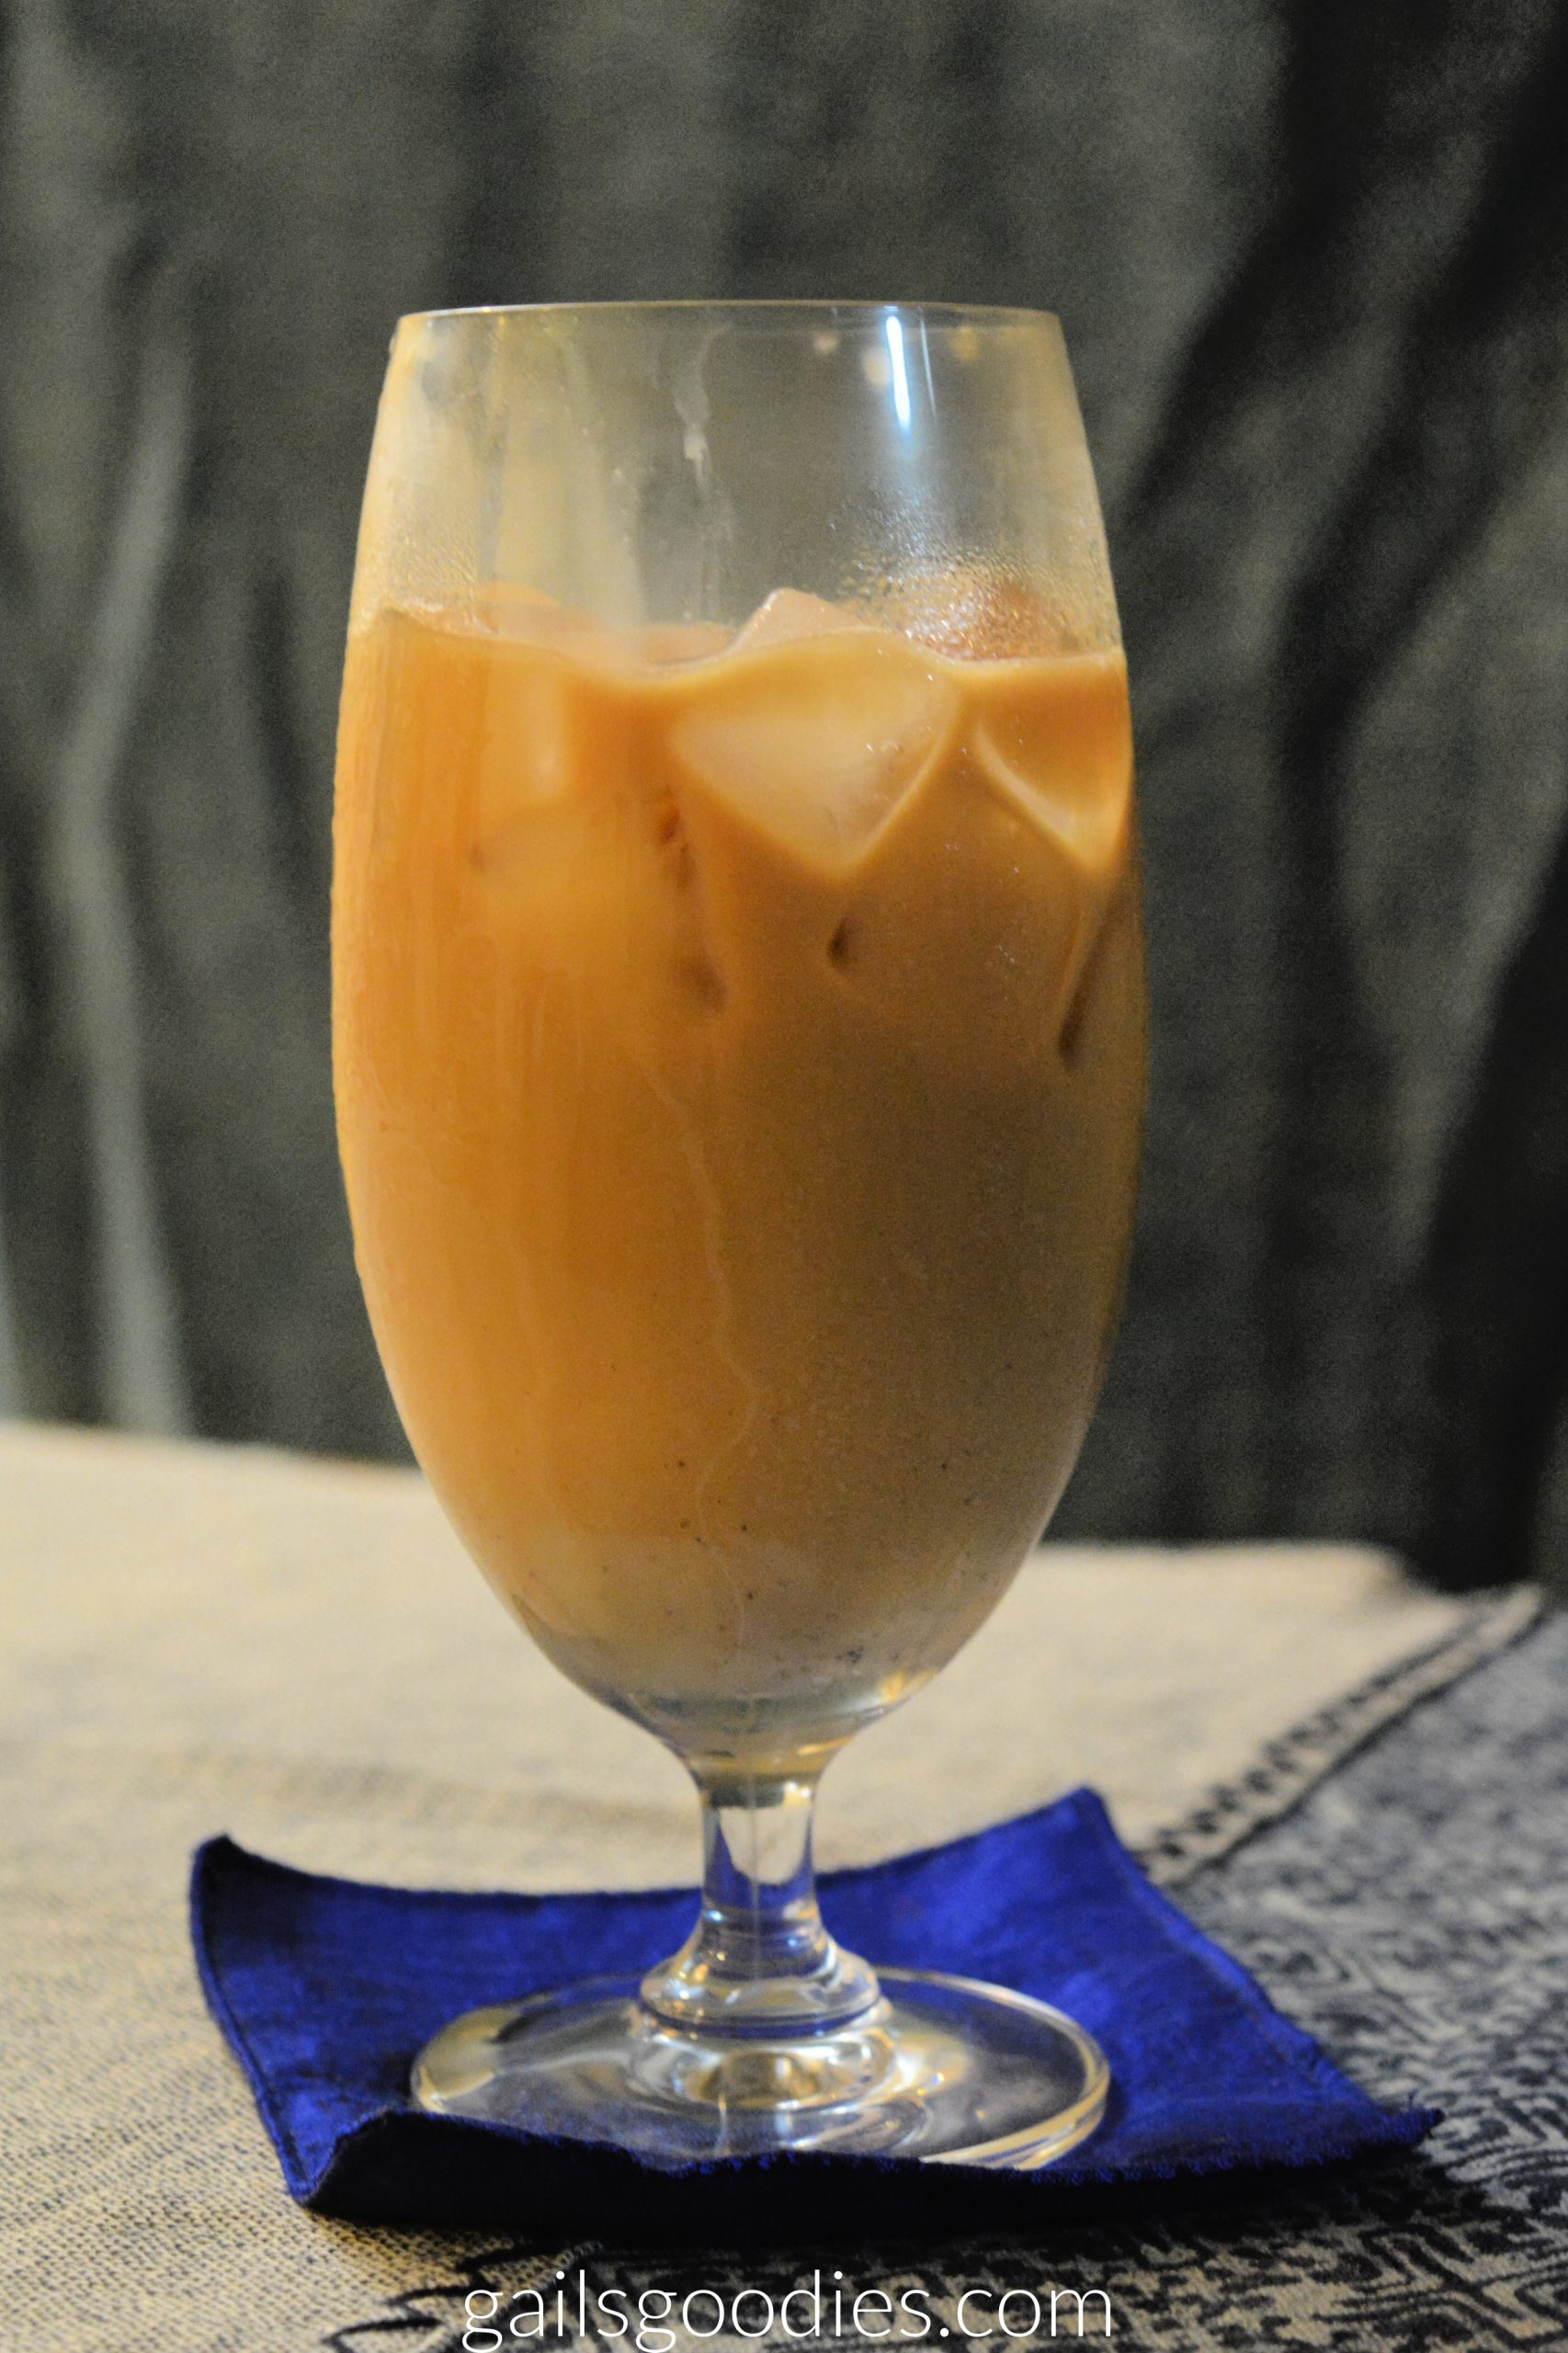 a tall stemmed glass of creamy iced coffee. There is a little layer of sweetened condensed milk at the bottom and caramel colored coffee mixture on top. Several ice-cubes are floating at the top.